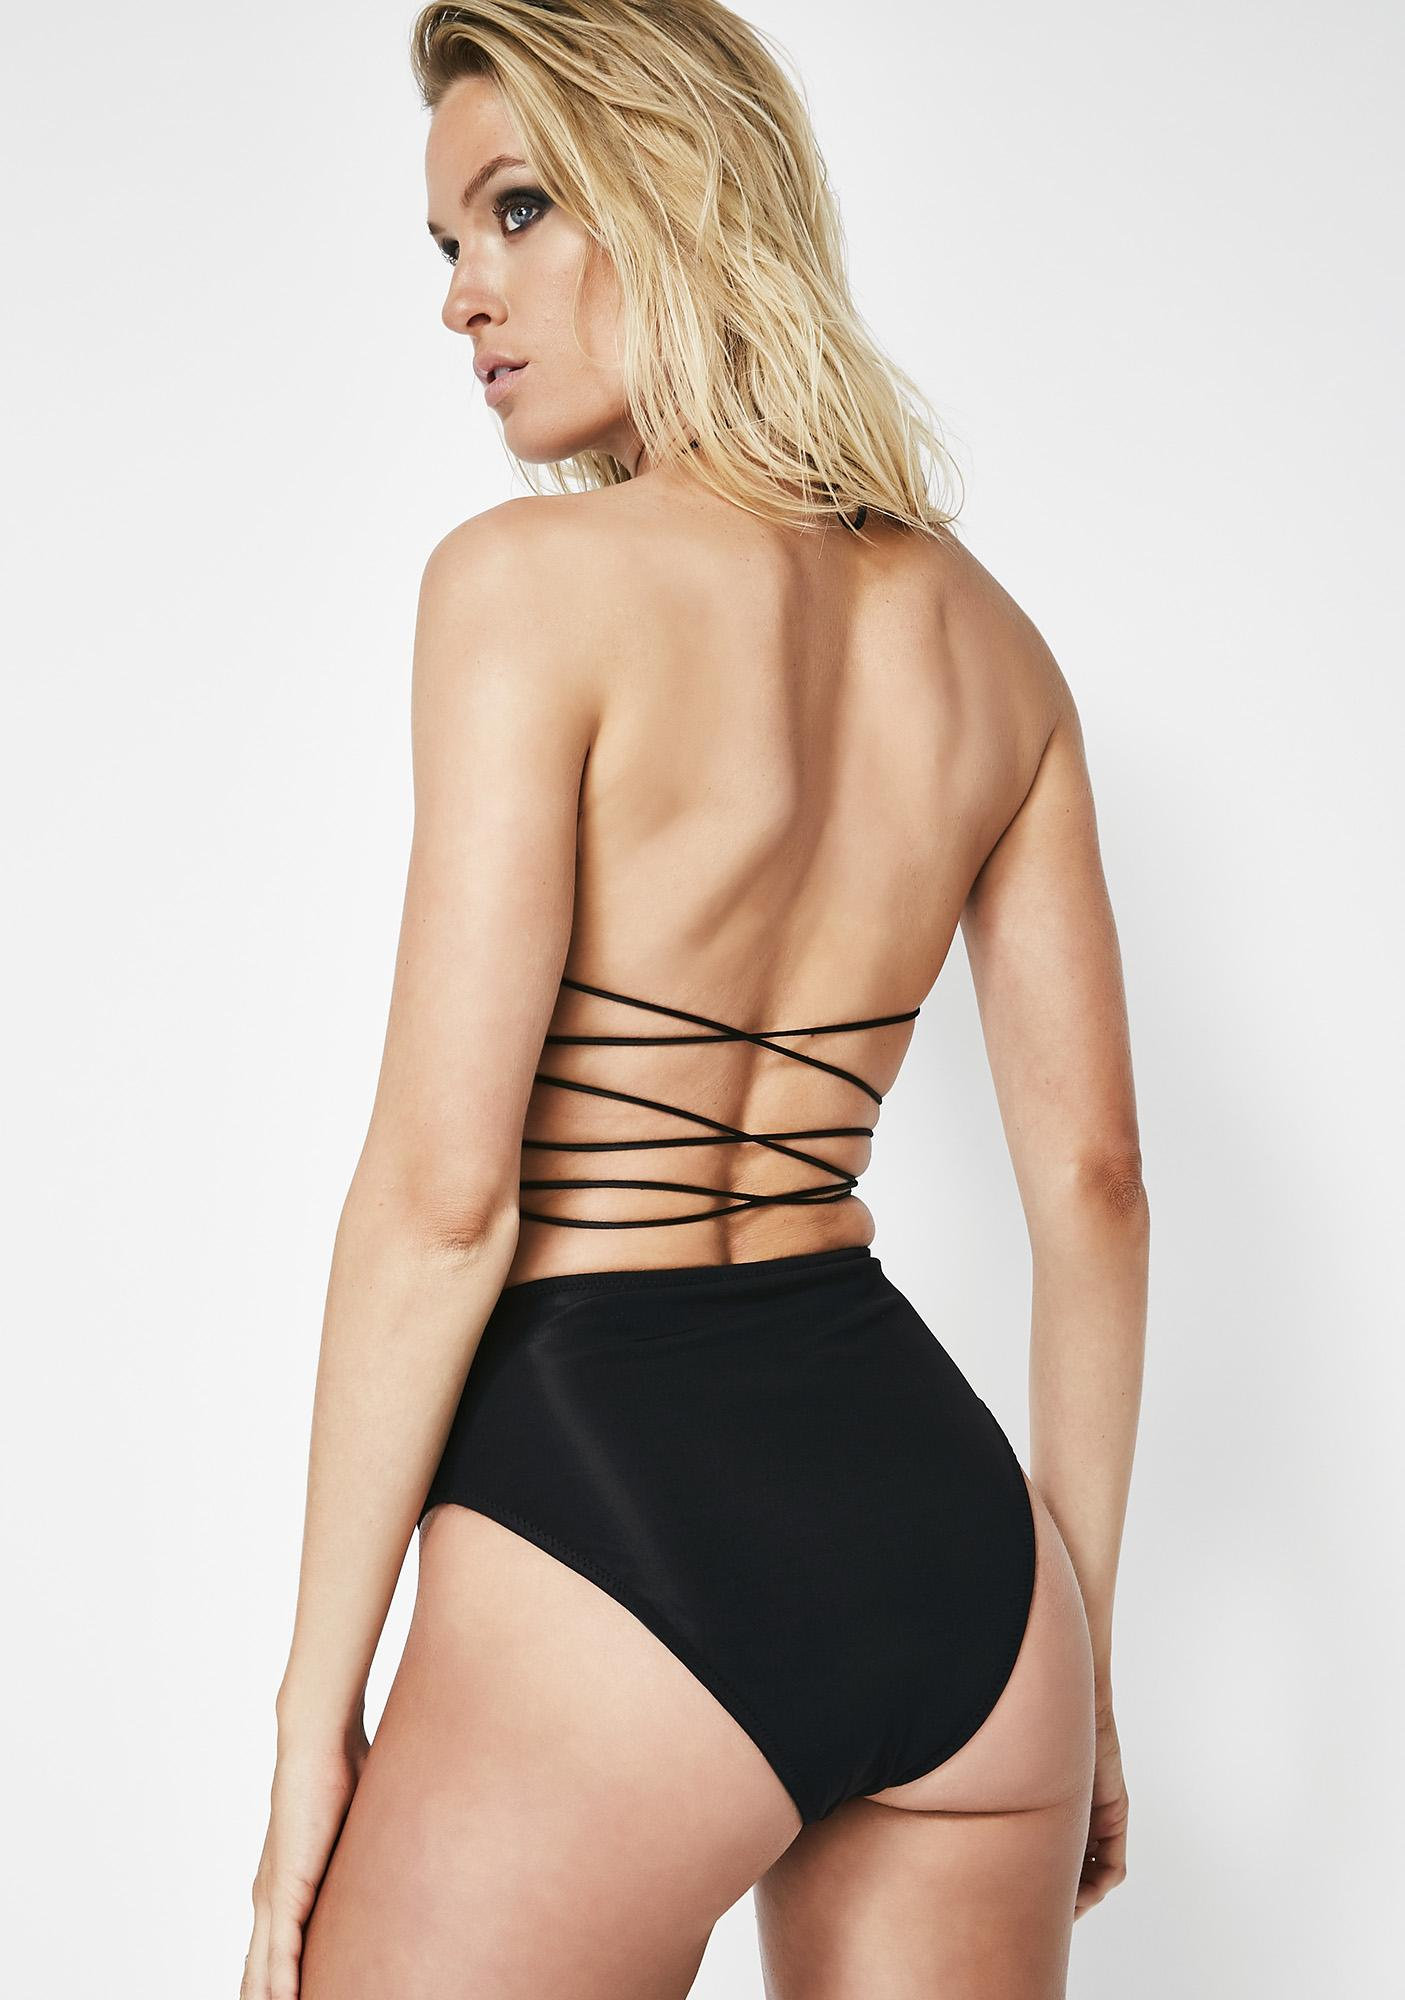 Kiki Riki Tuff Stuff Lace-Up Booty Shorts